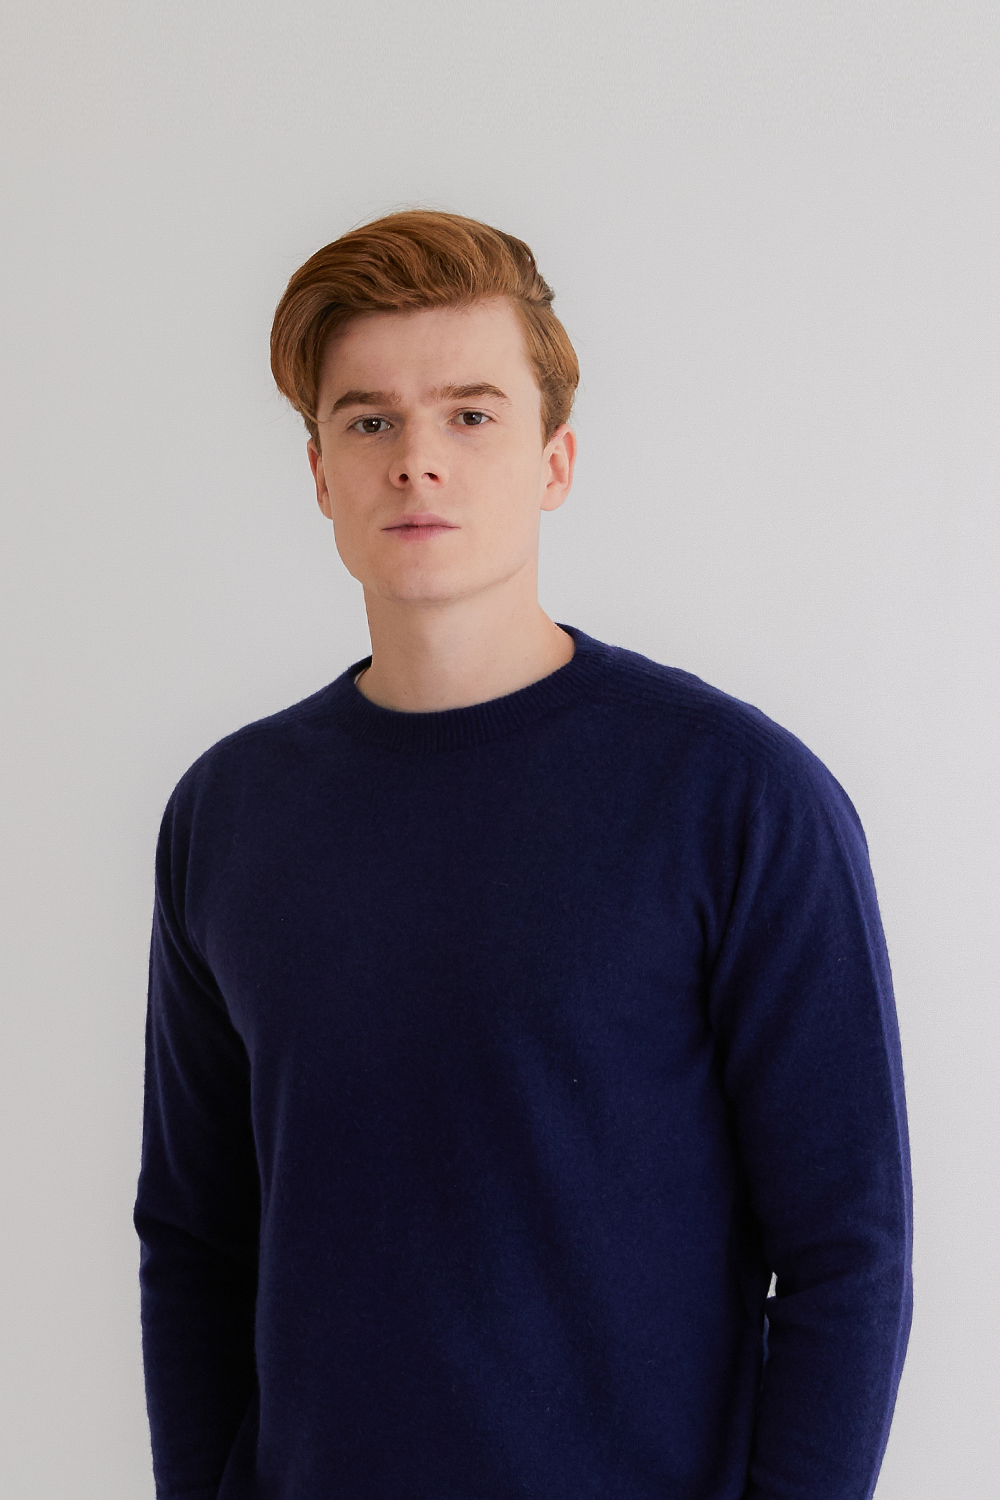 Pure cashmere100 whole-garment knitting roundneck pullover - Royal blue navy (인기 상품/ L 사이즈 품절)